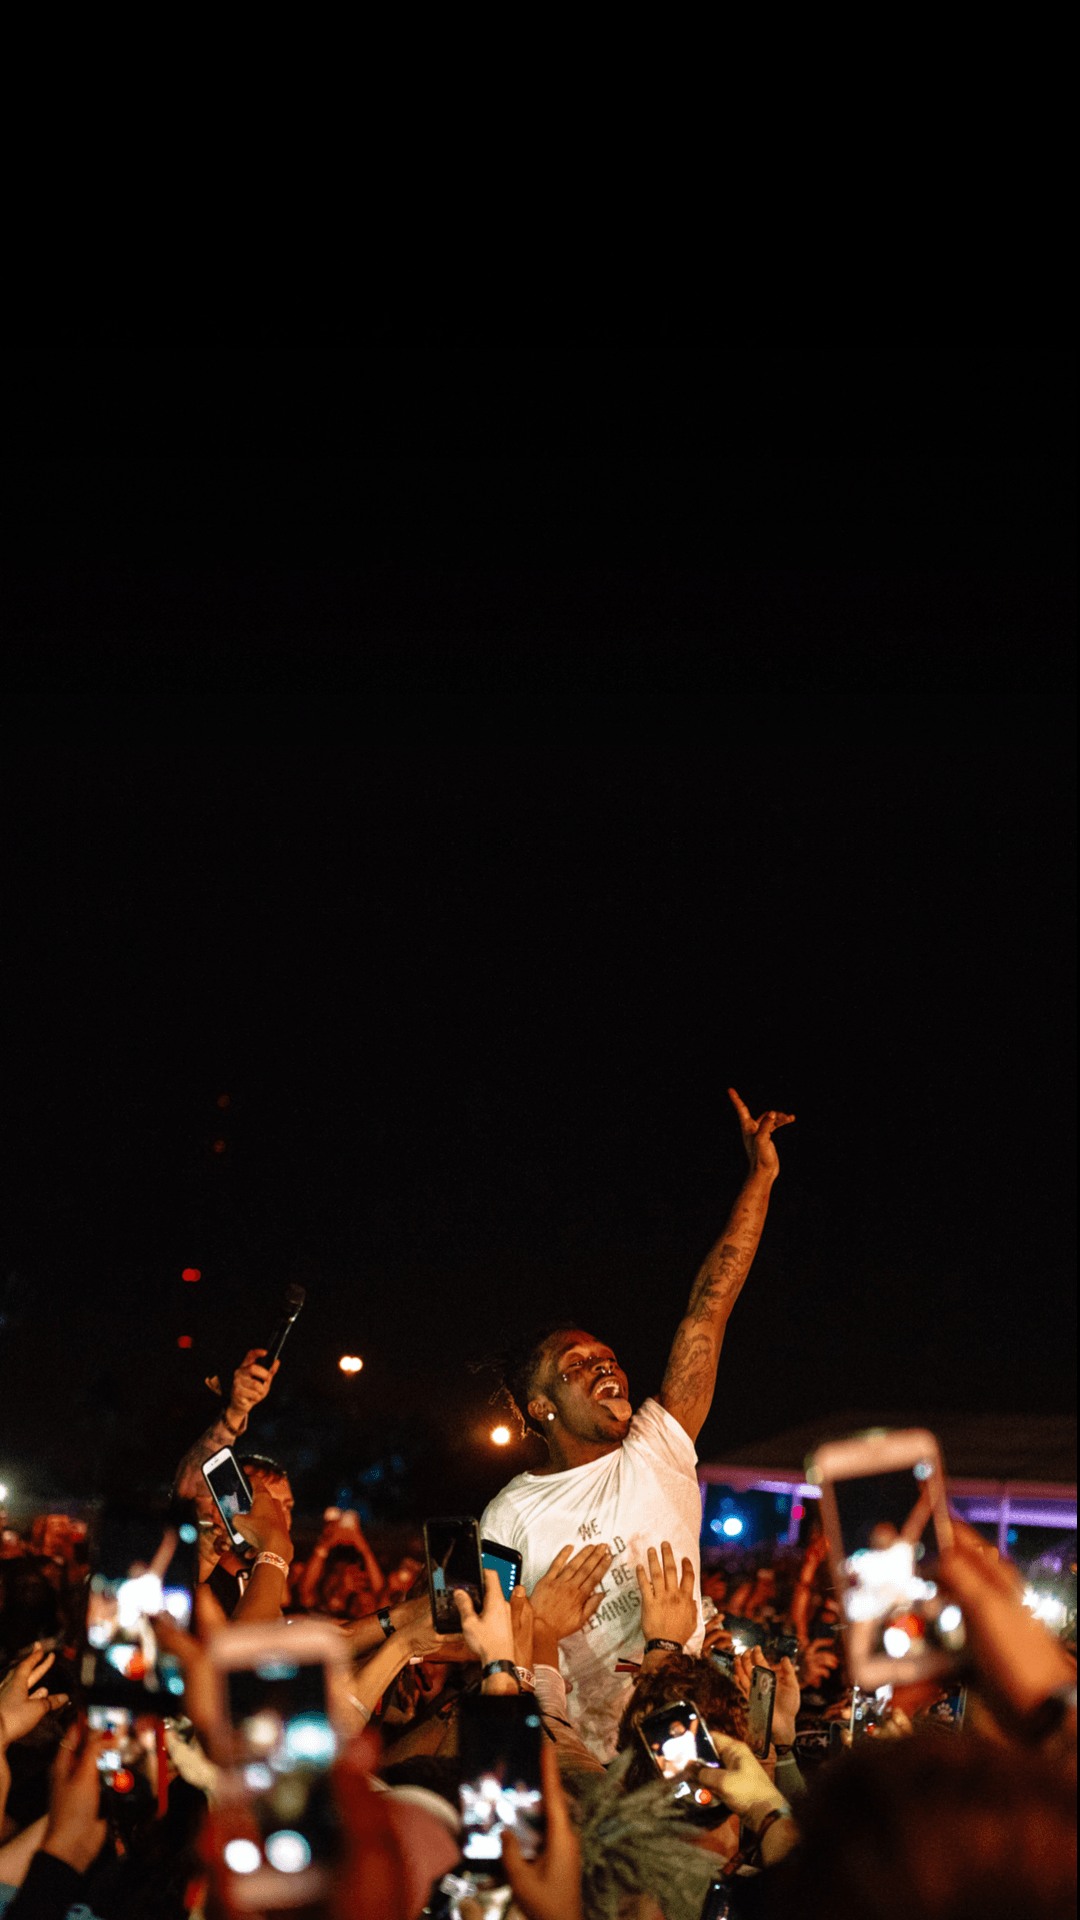 1080x1920 I've made another Lil Uzi Vert wallpaper for phones [1080x1920 ...